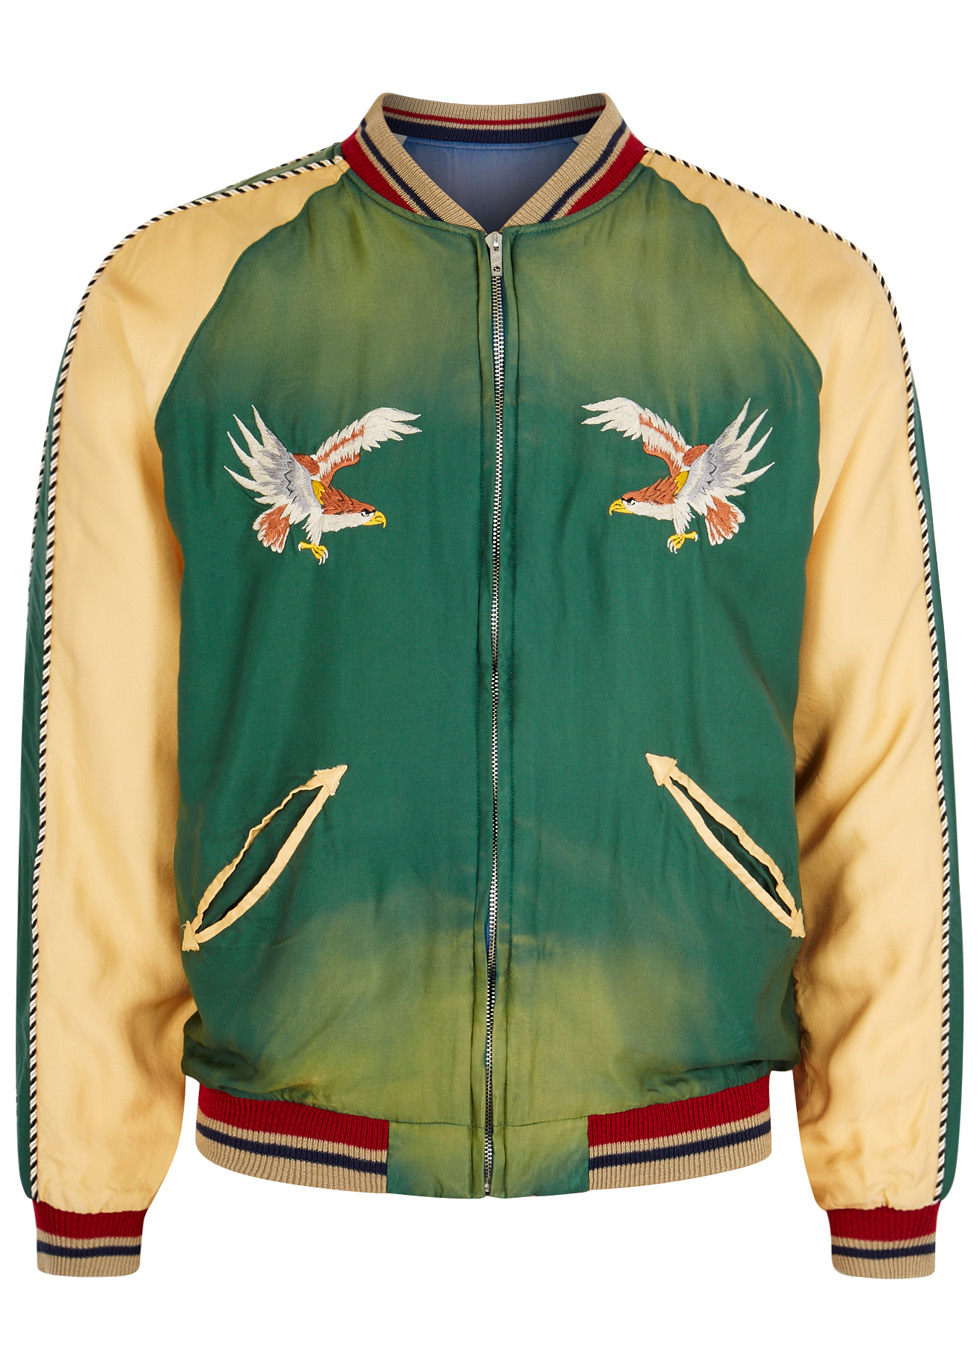 TAILOR TOYO EMBROIDERED REVERSIBLE SOUVENIR JACKET